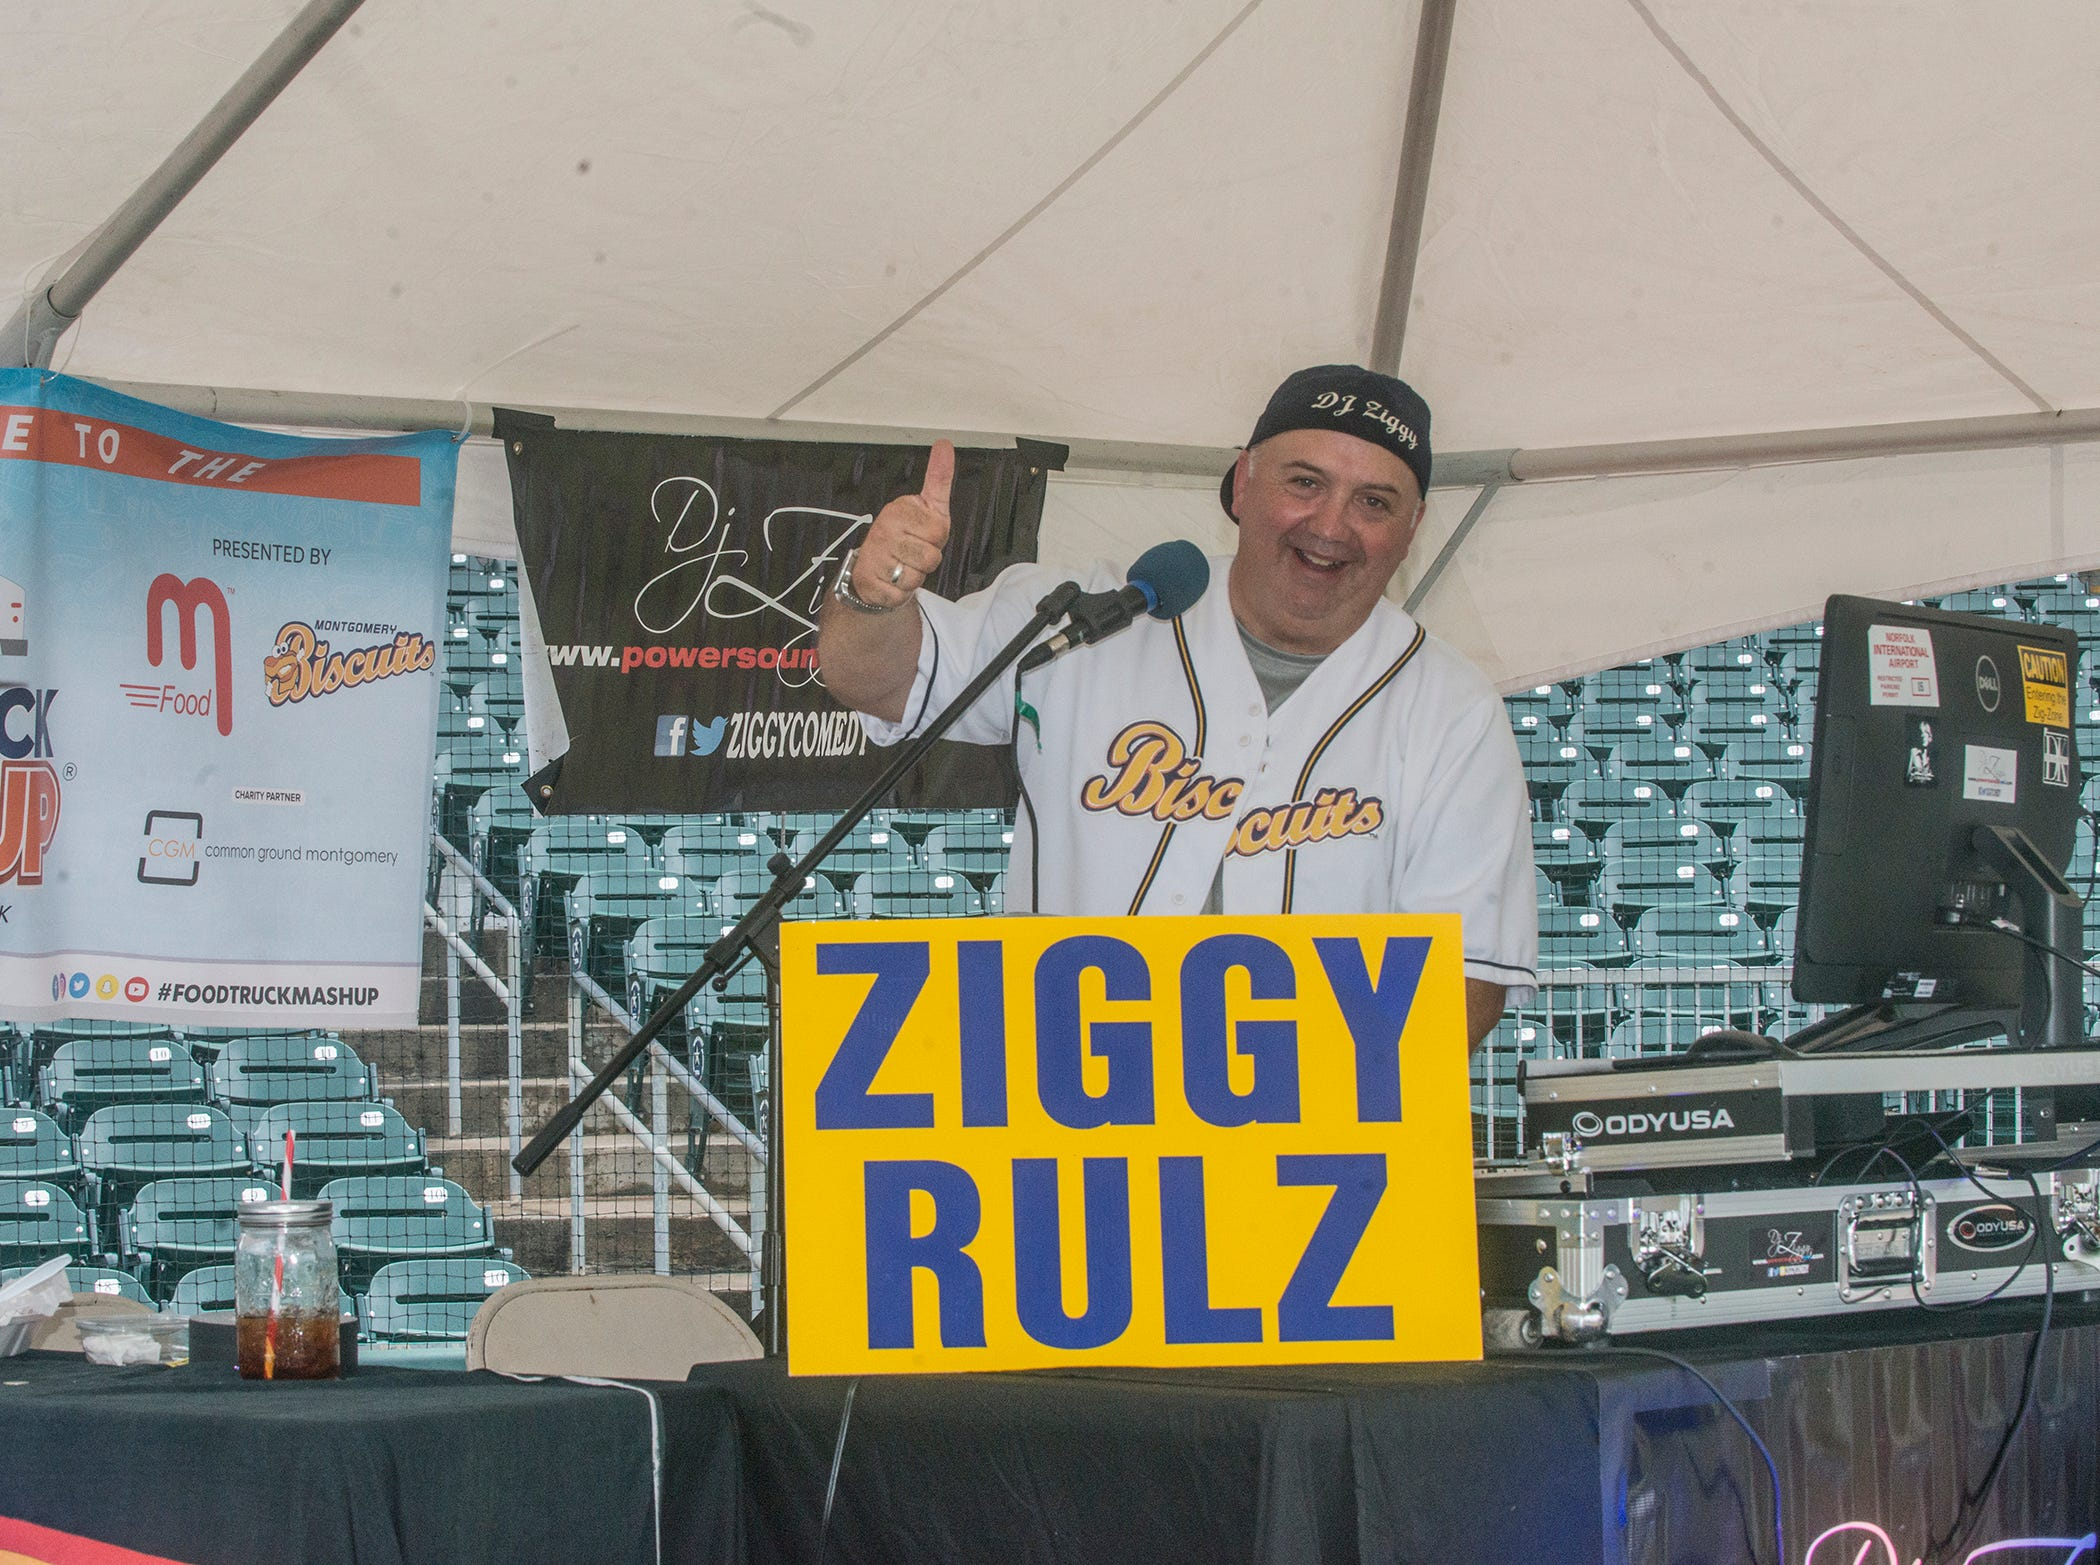 D.J. Ziggy was playing music and entertaining the crowd. Food Truck Mash-Up returned to Riverwalk Stadium on Saturday, Oct. 20, 2018, bringing a variety of food trucks, music and games for guests to enjoy.